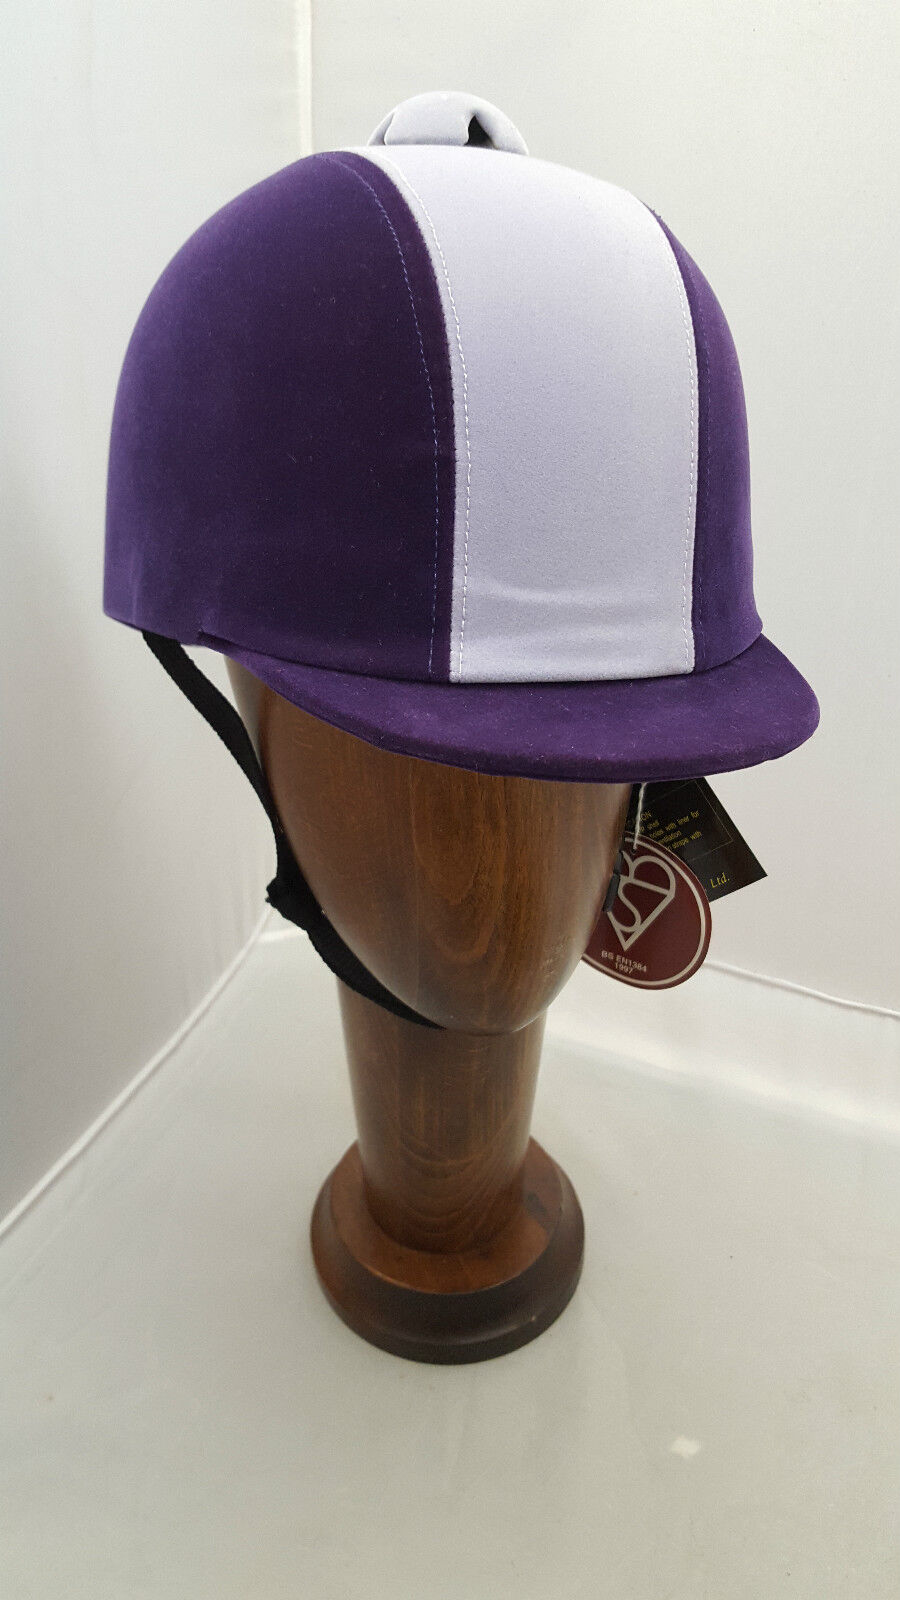 Double Horse Two Tone Hat Purple purplec 53 54  55 57  inexpensive